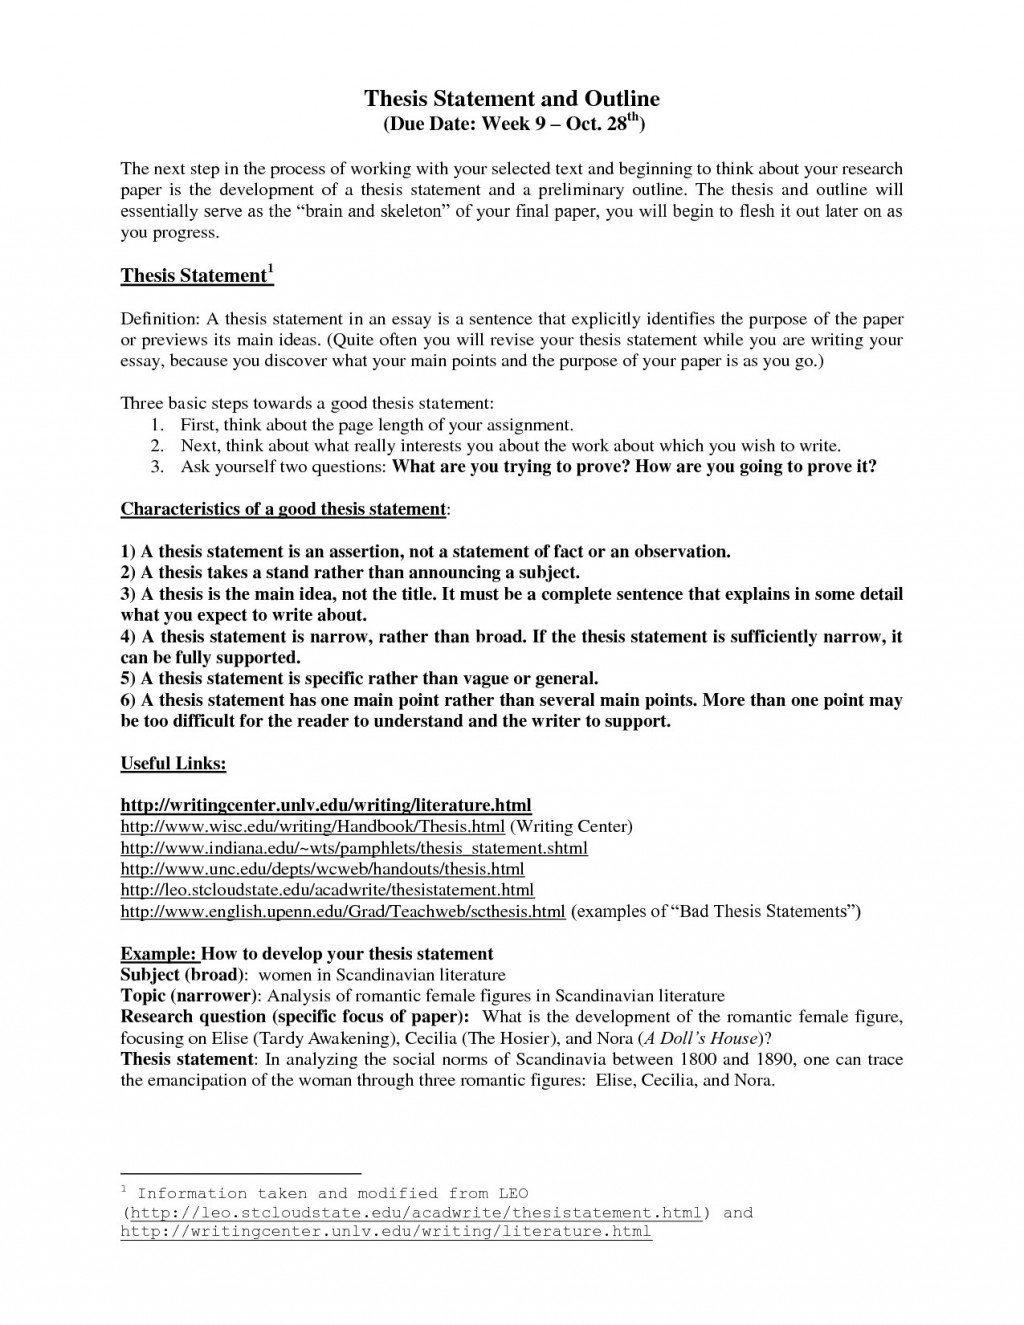 008 Research Paper Career Thesis Fresh Statement Examples School With Regard To Argumentative Essay Stirring For My Good Large